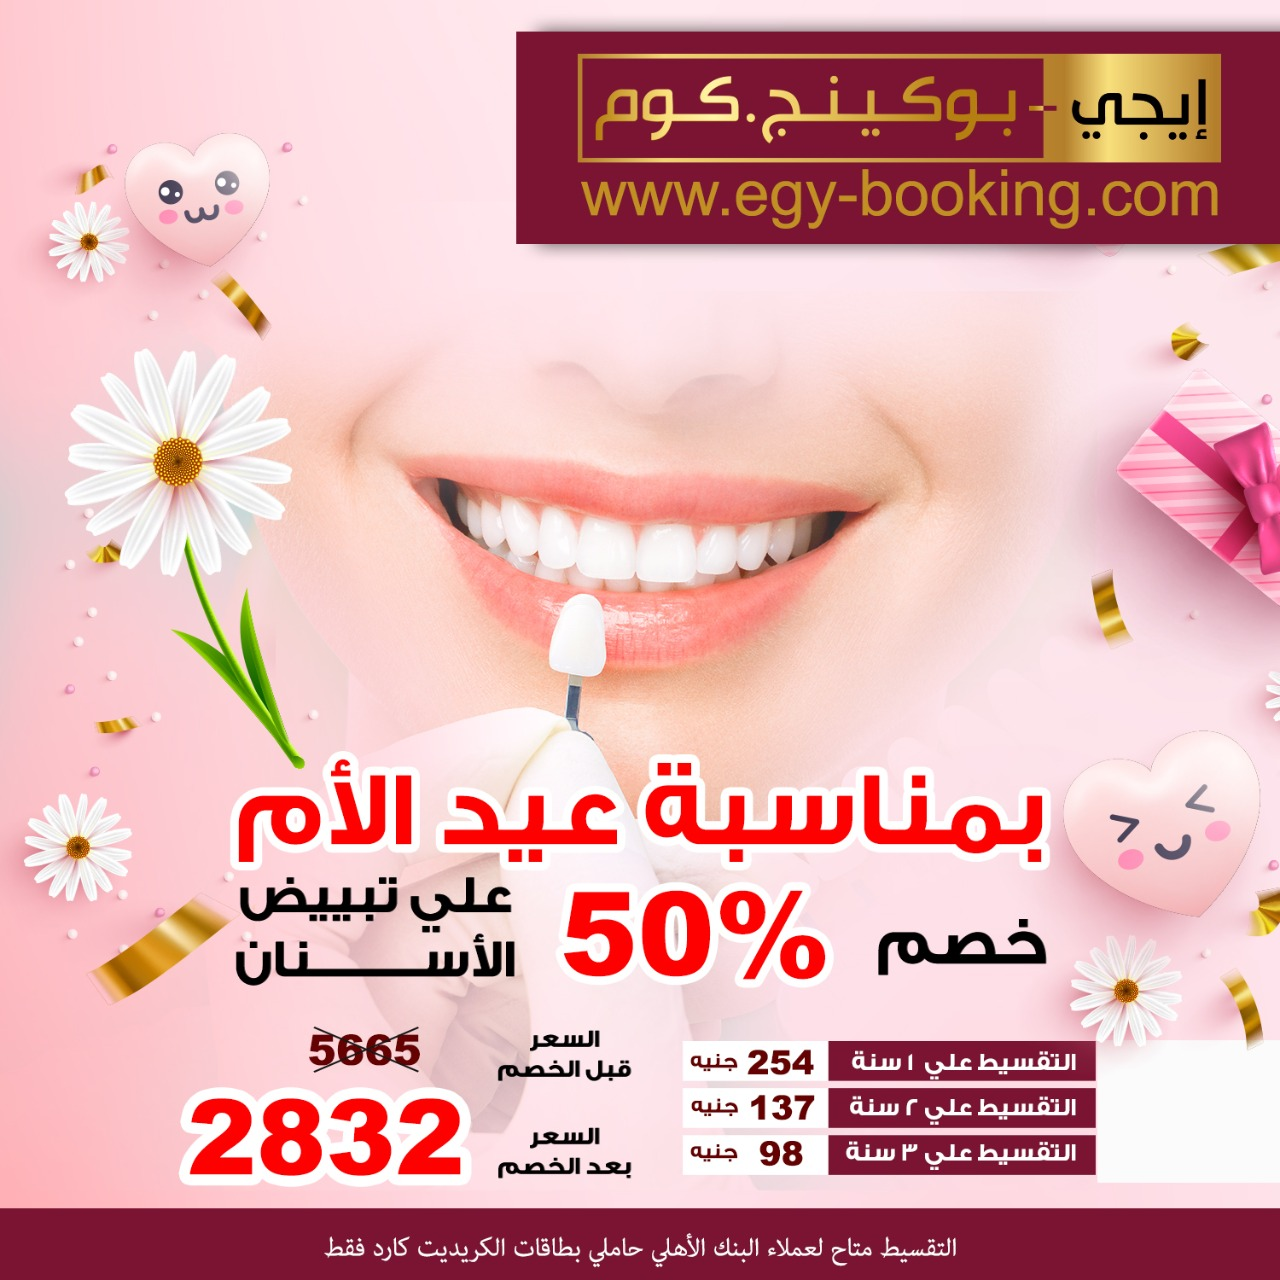 Mother's Day Offers - Chemical Teeth Whitening